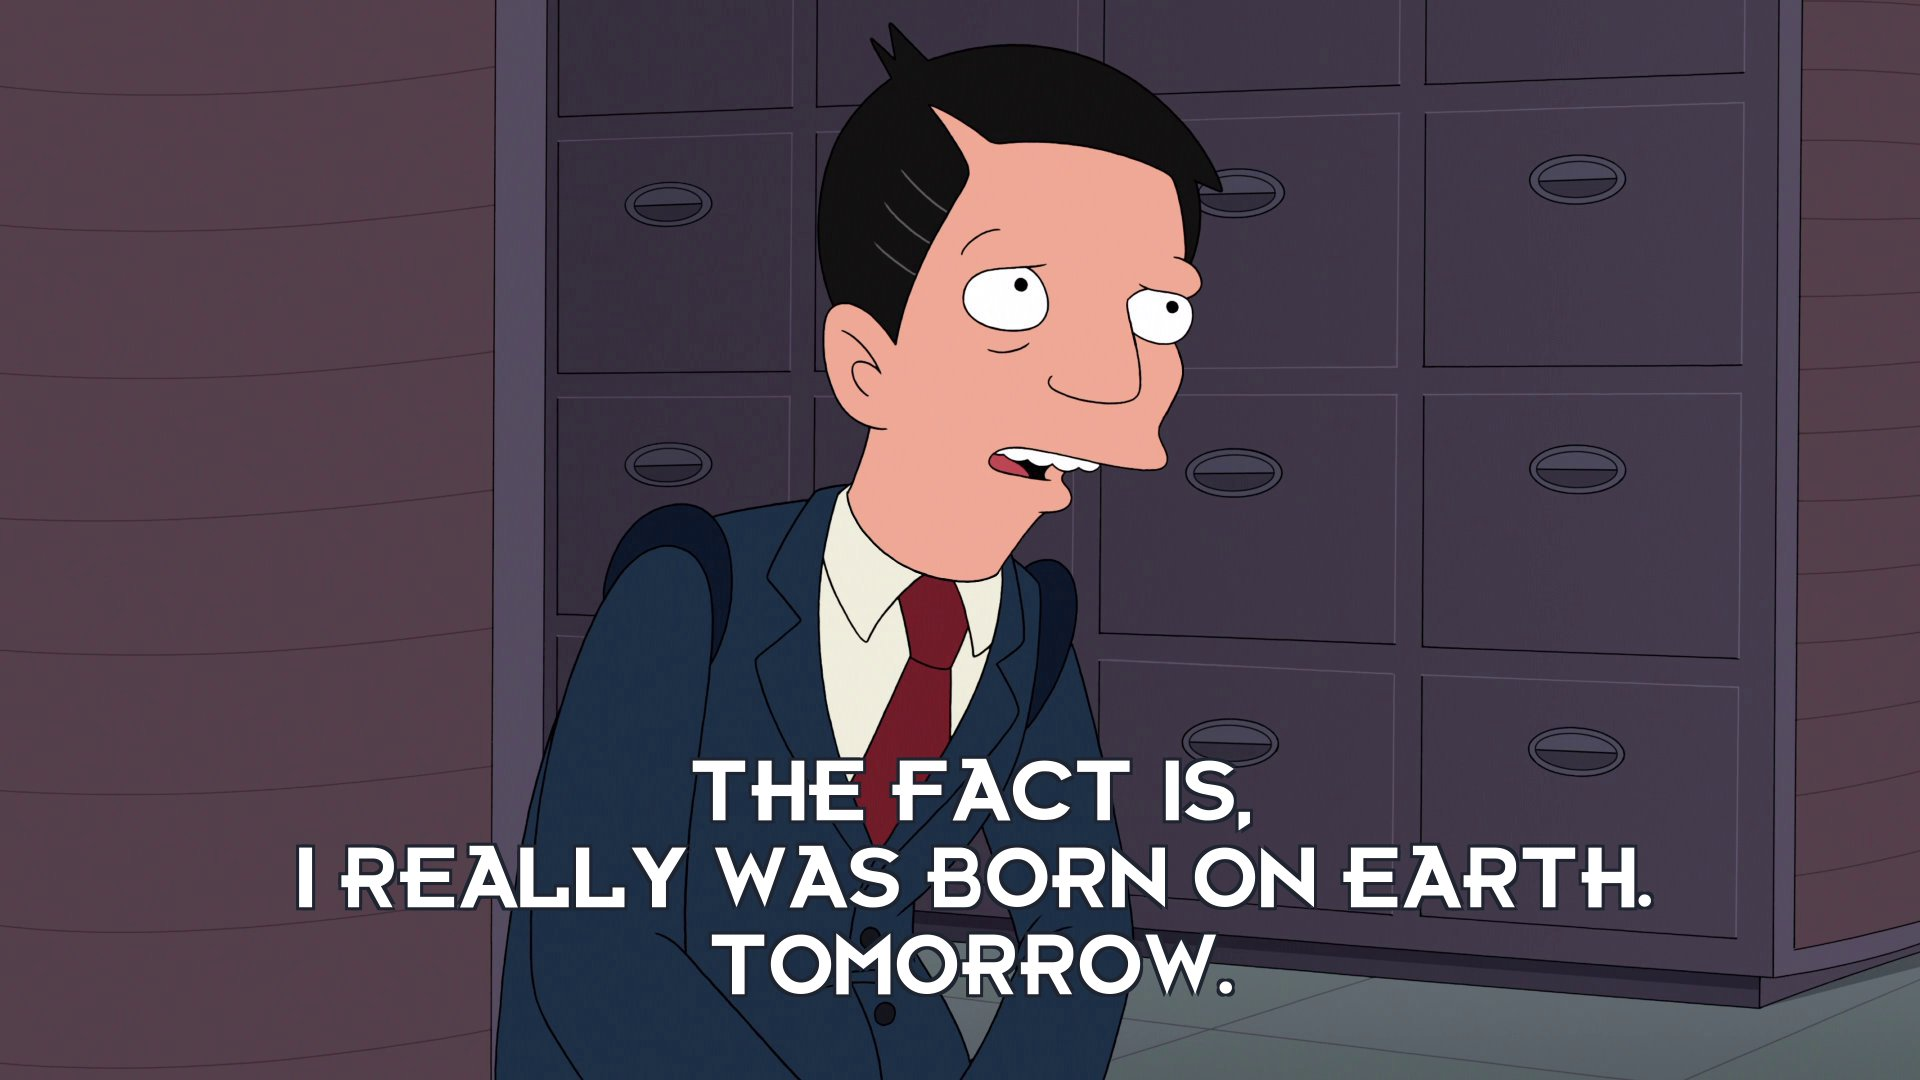 Sen Chris Travers: The fact is, I really was born on Earth. Tomorrow.